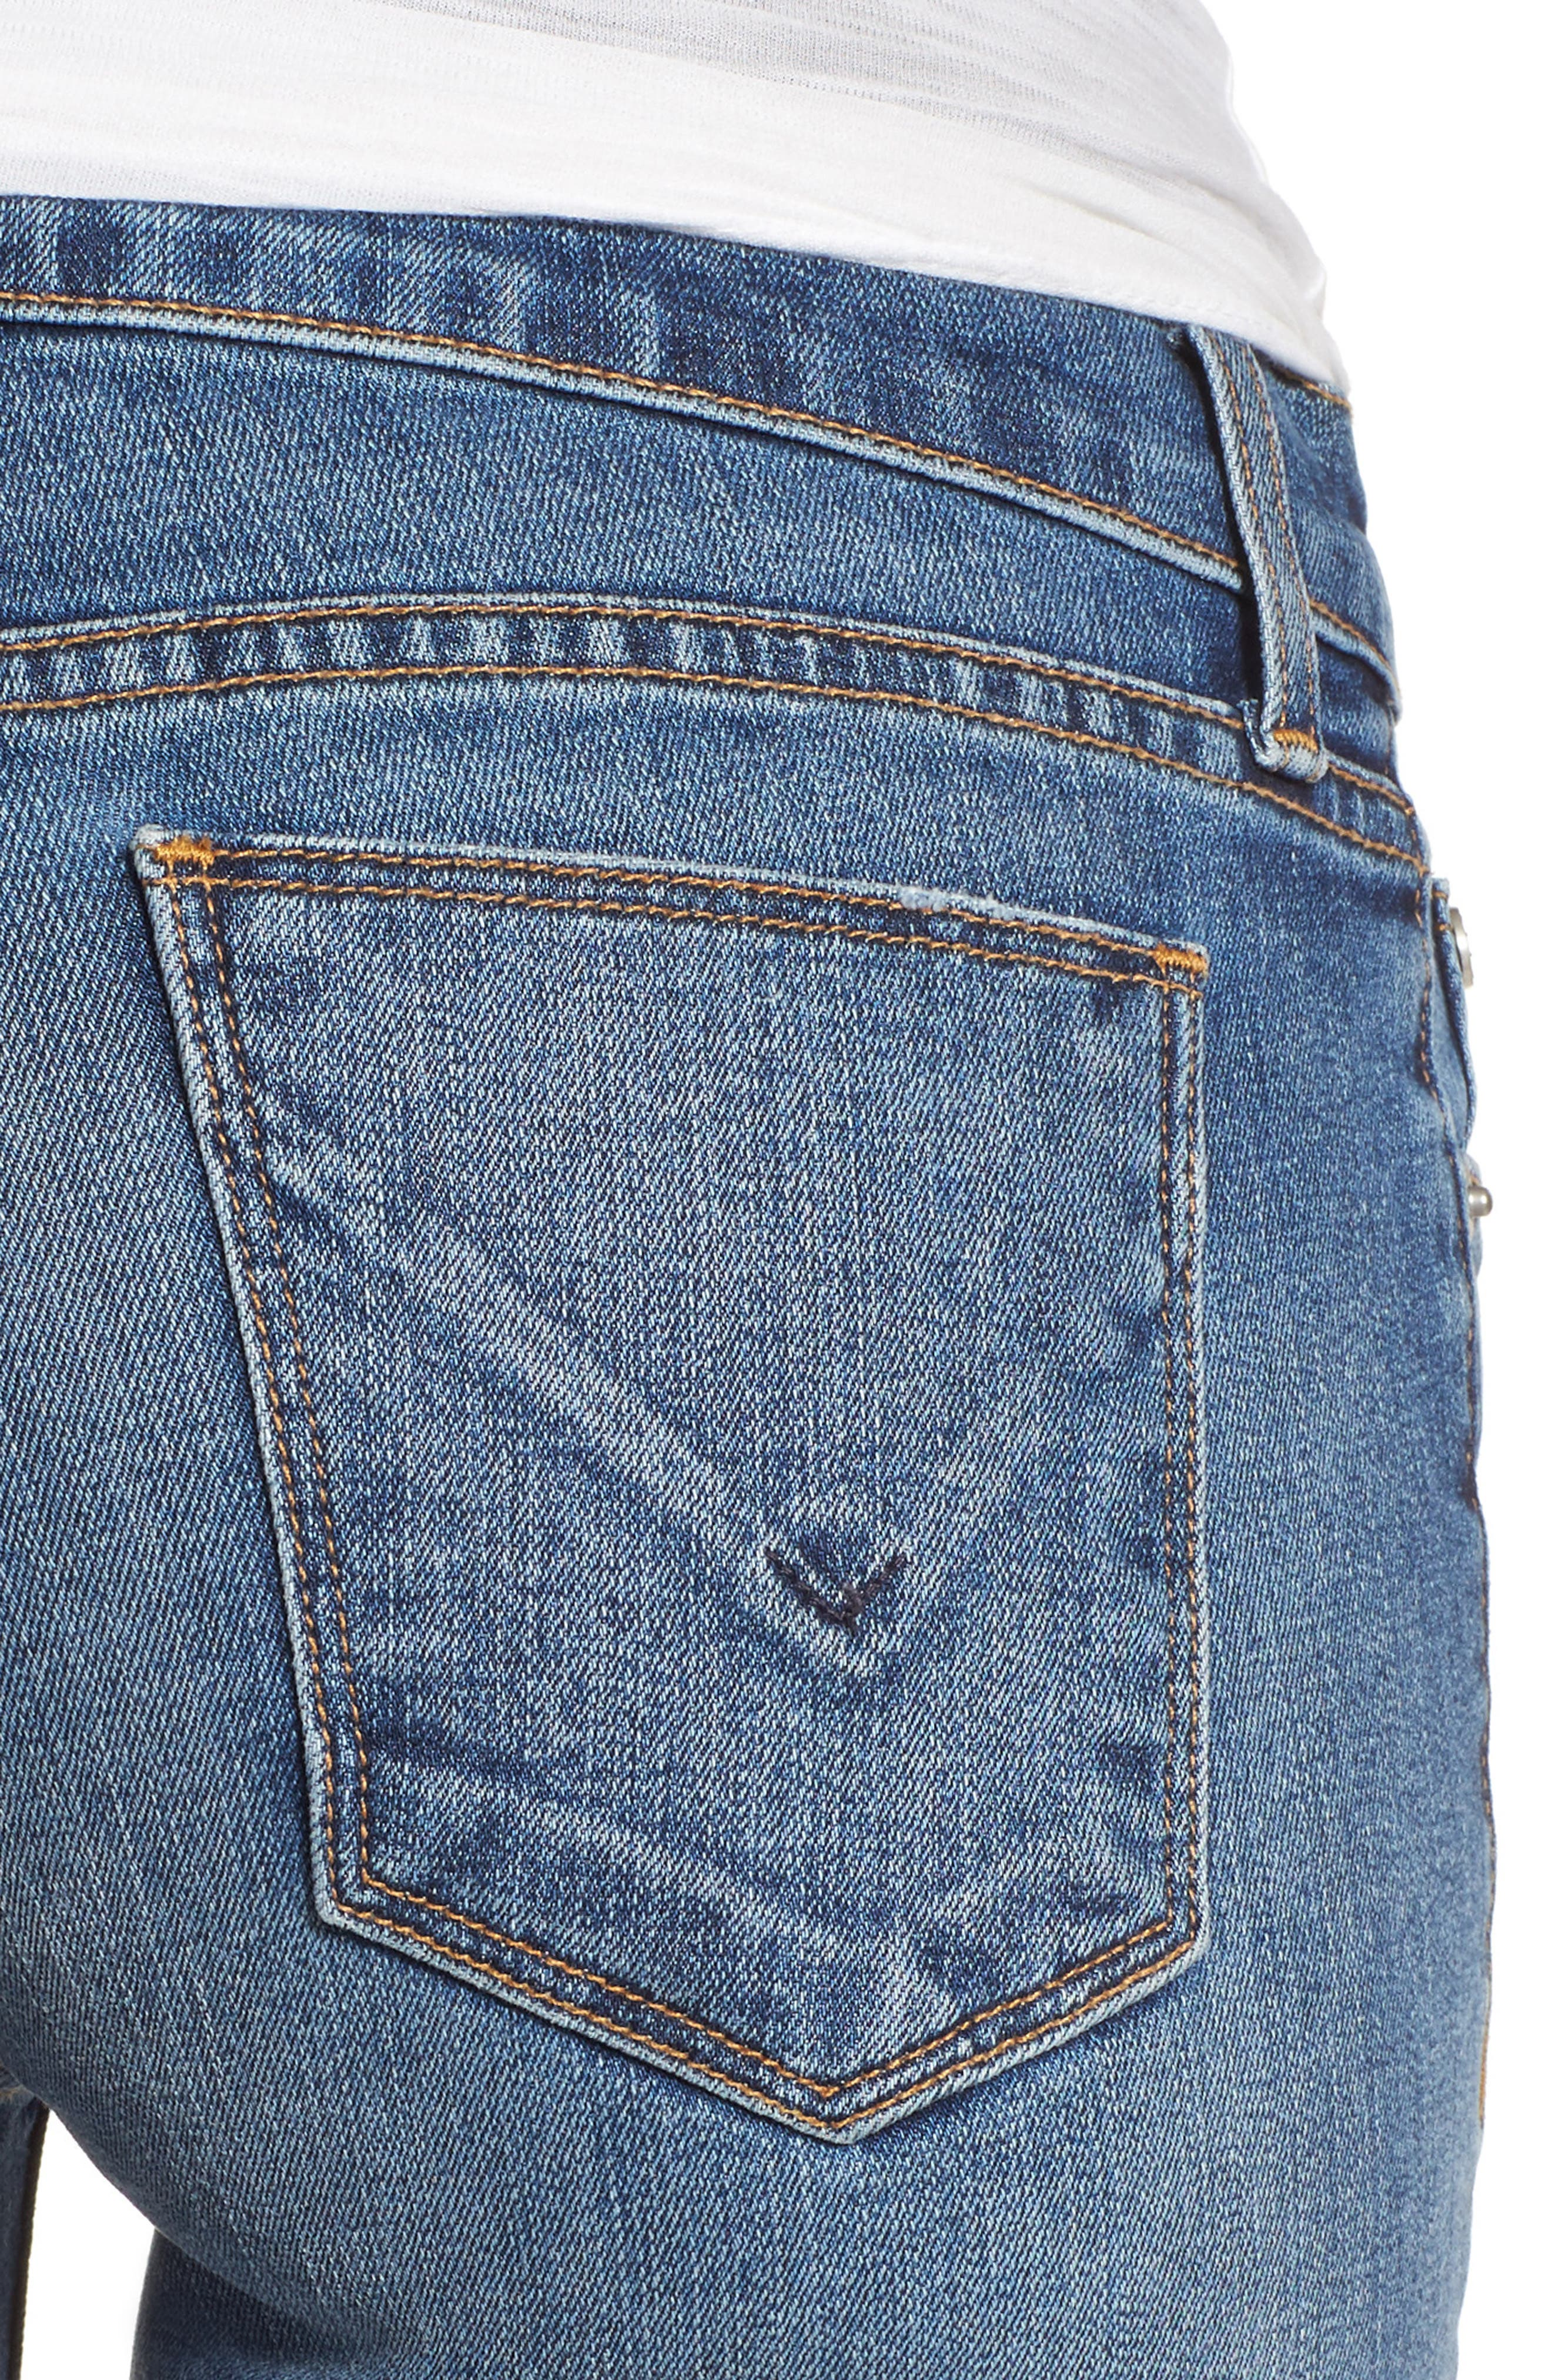 HUDSON JEANS,                             Tally Cuffed Crop Skinny Jeans,                             Alternate thumbnail 4, color,                             426